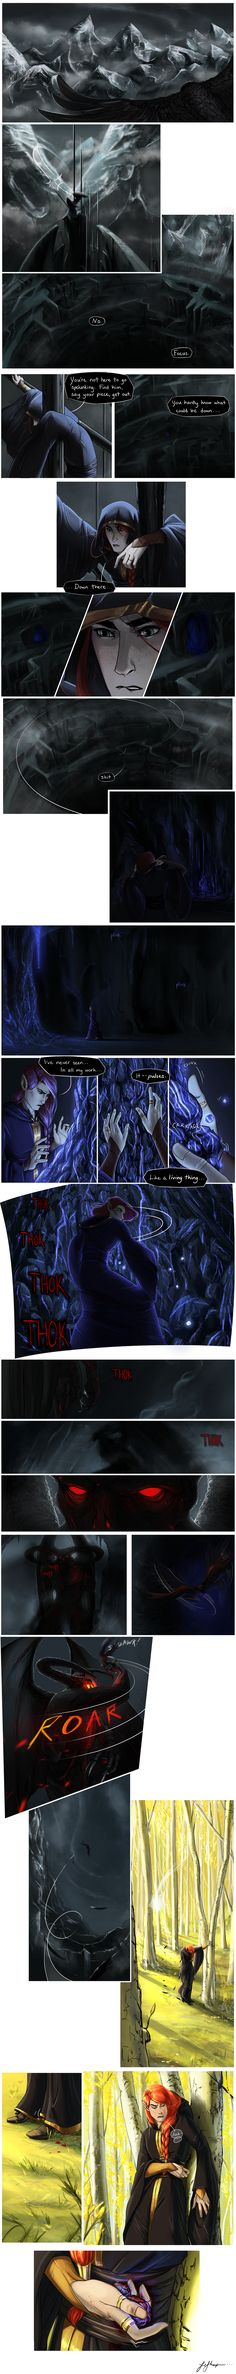 The angbang ship hasn't speculated on the origin of Mairon and Melkor's relationship too much, so I'm exploring it here in this continuing strip. Enjoy! Edit: Unfortunately I decided to finally qui...